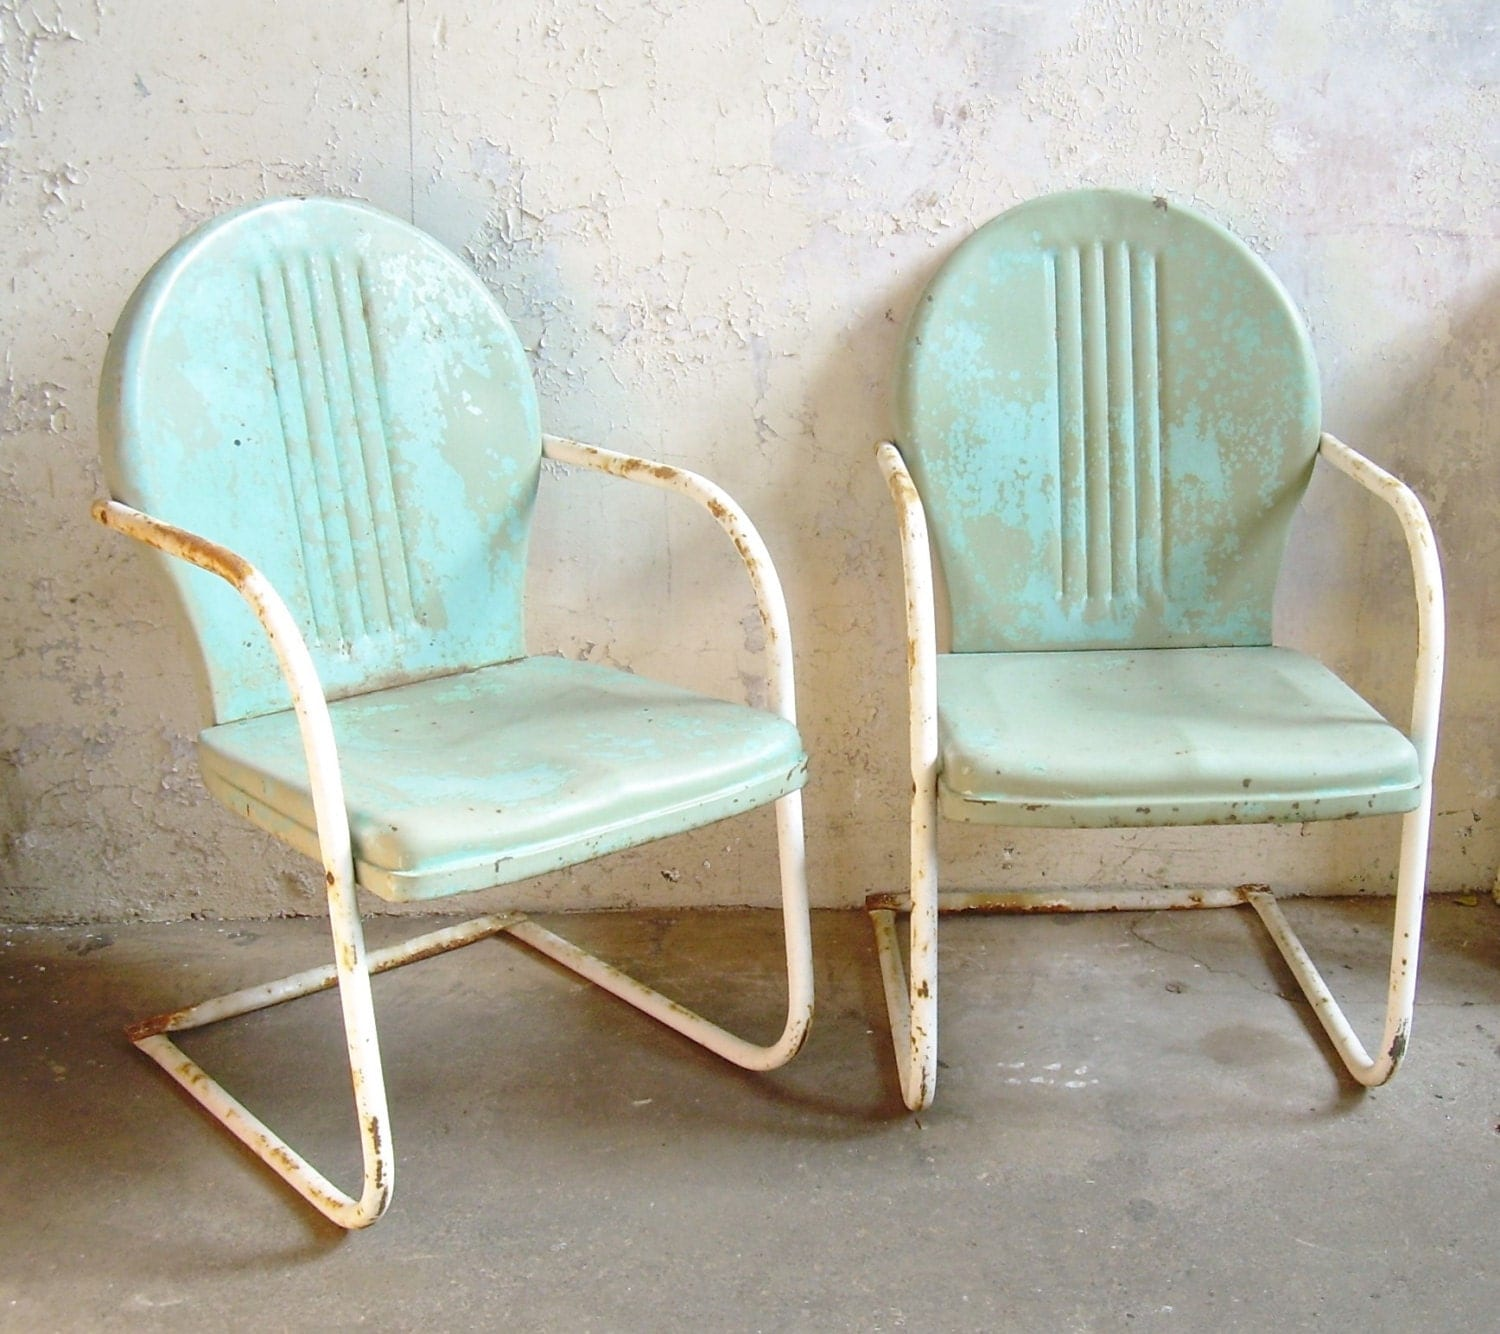 Retro metal lawn chairs pair rustic vintage porch furniture Metal patio furniture vintage